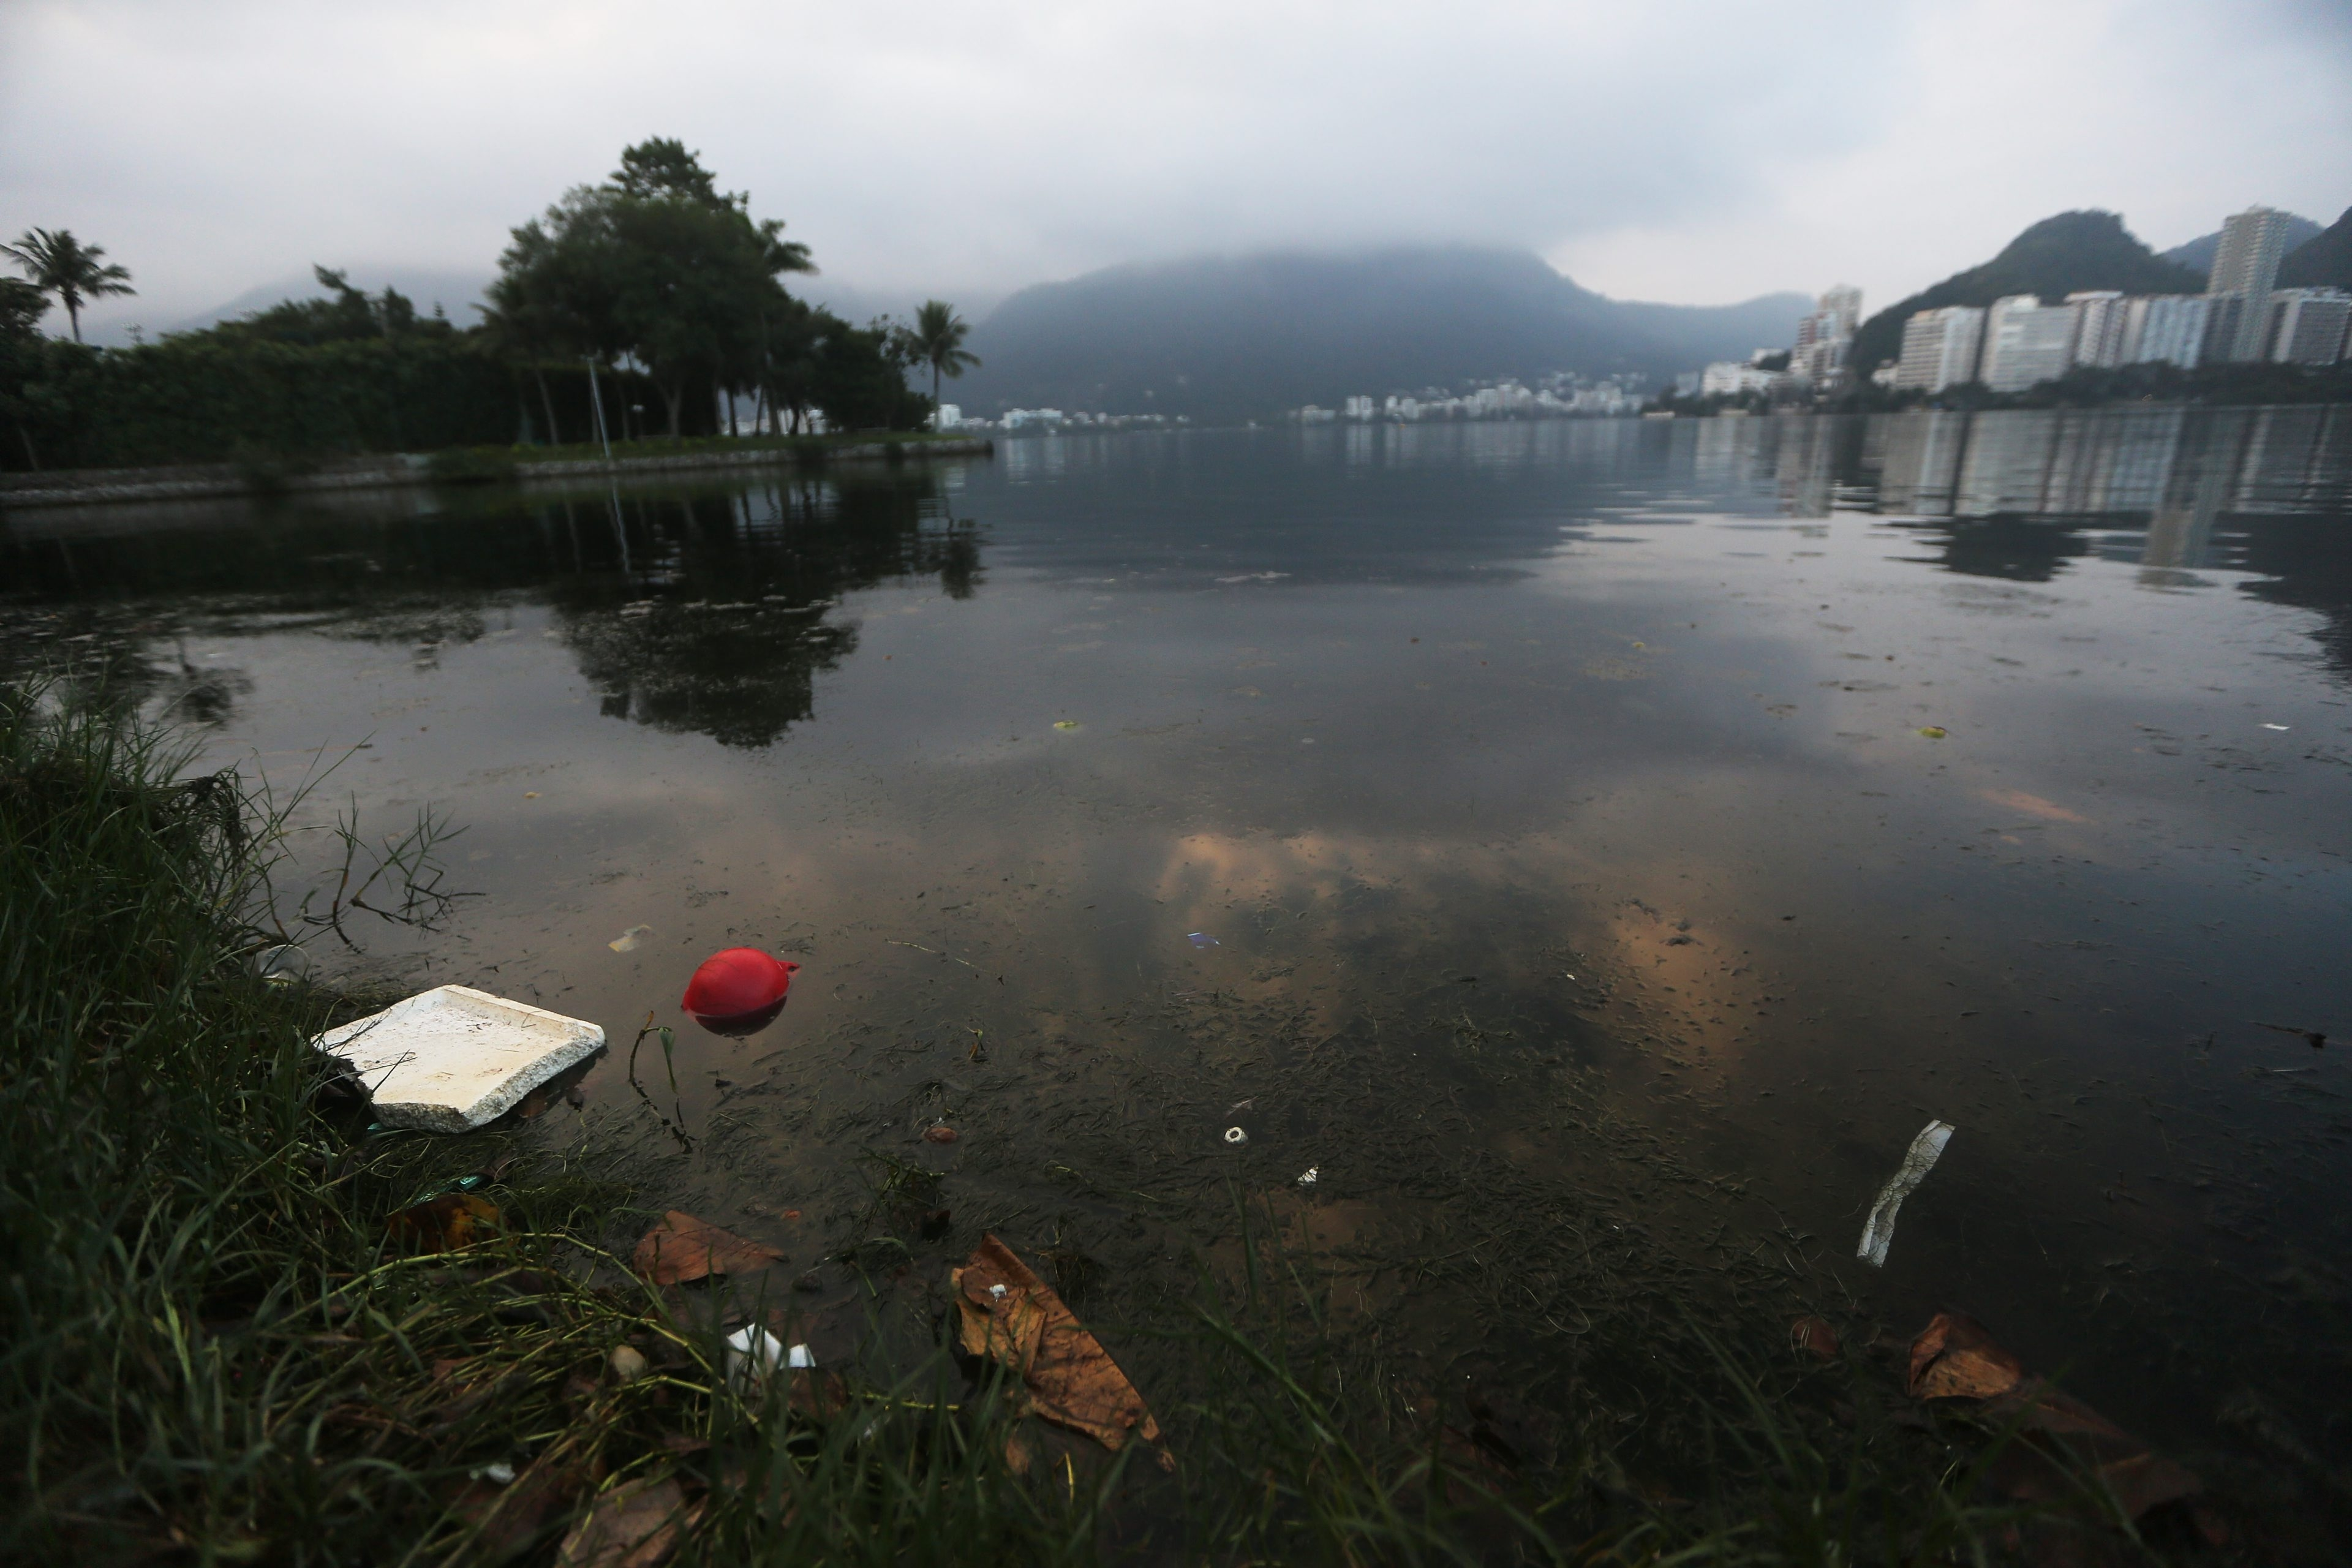 Garbage floats in the polluted Rodrigo de Freitas Lagoon, venue for the rowing events at the Rio 2016 Olympic Games, on July 1.